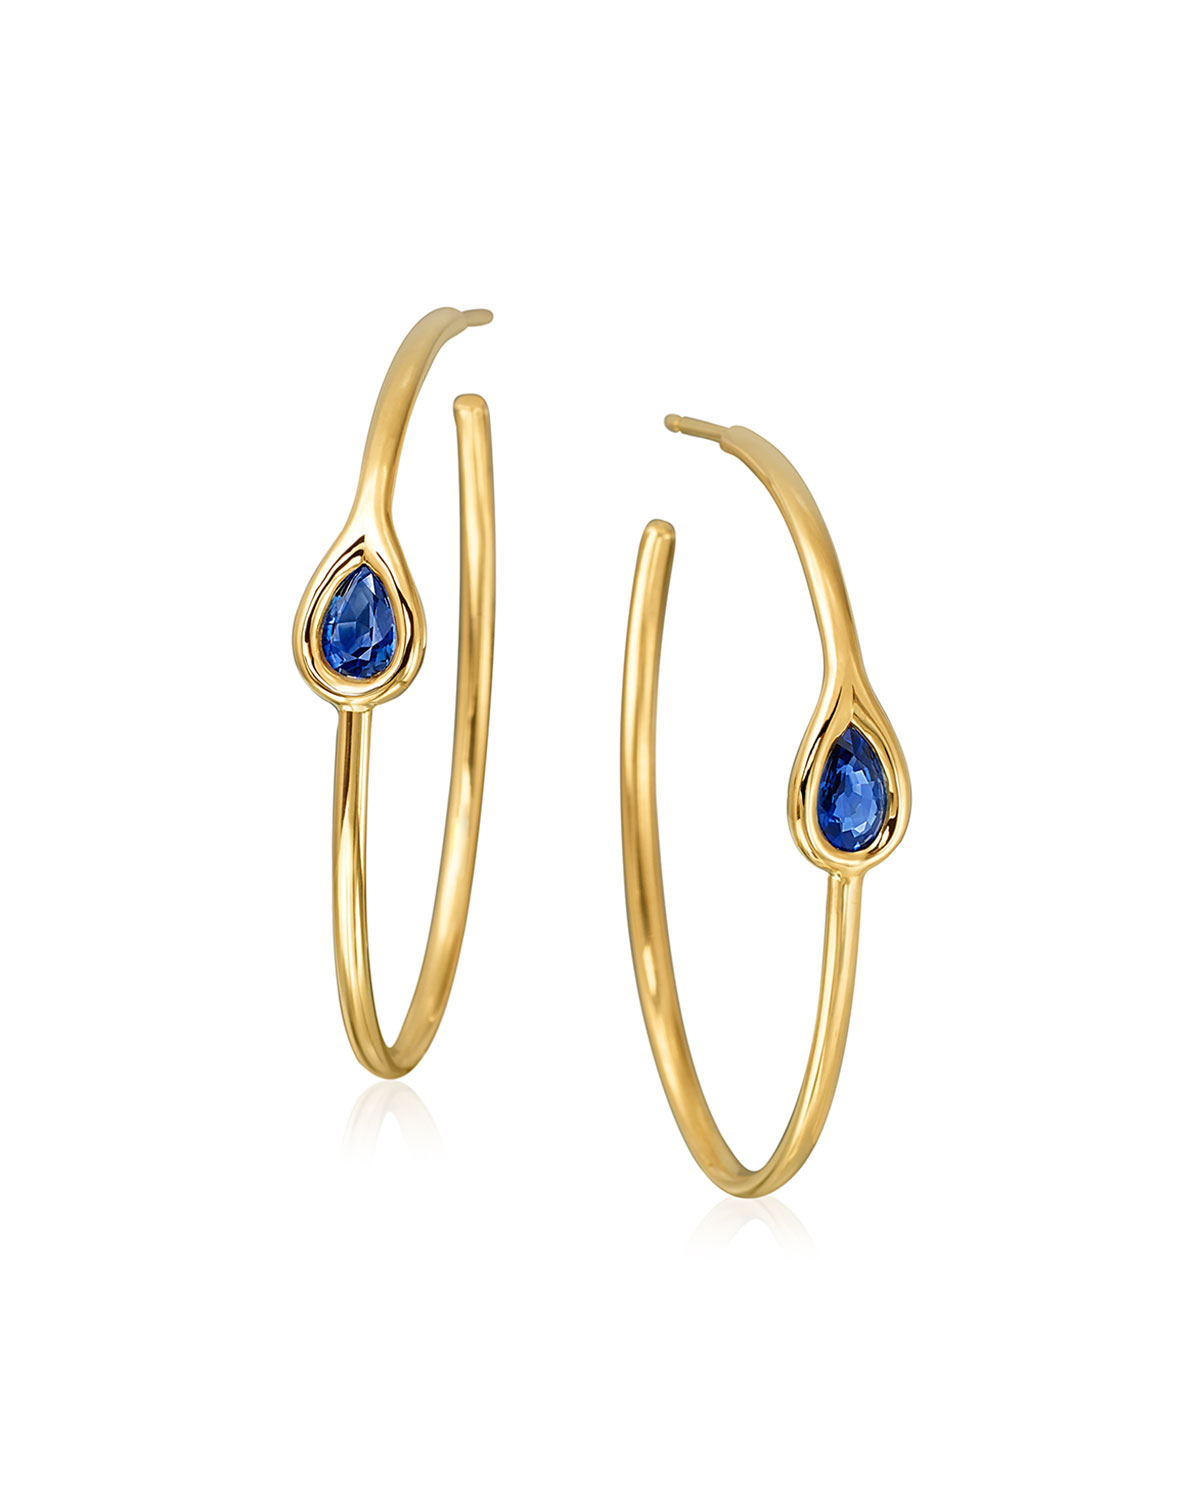 18k Gold Oval Post Hoop Earrings with Sapphire